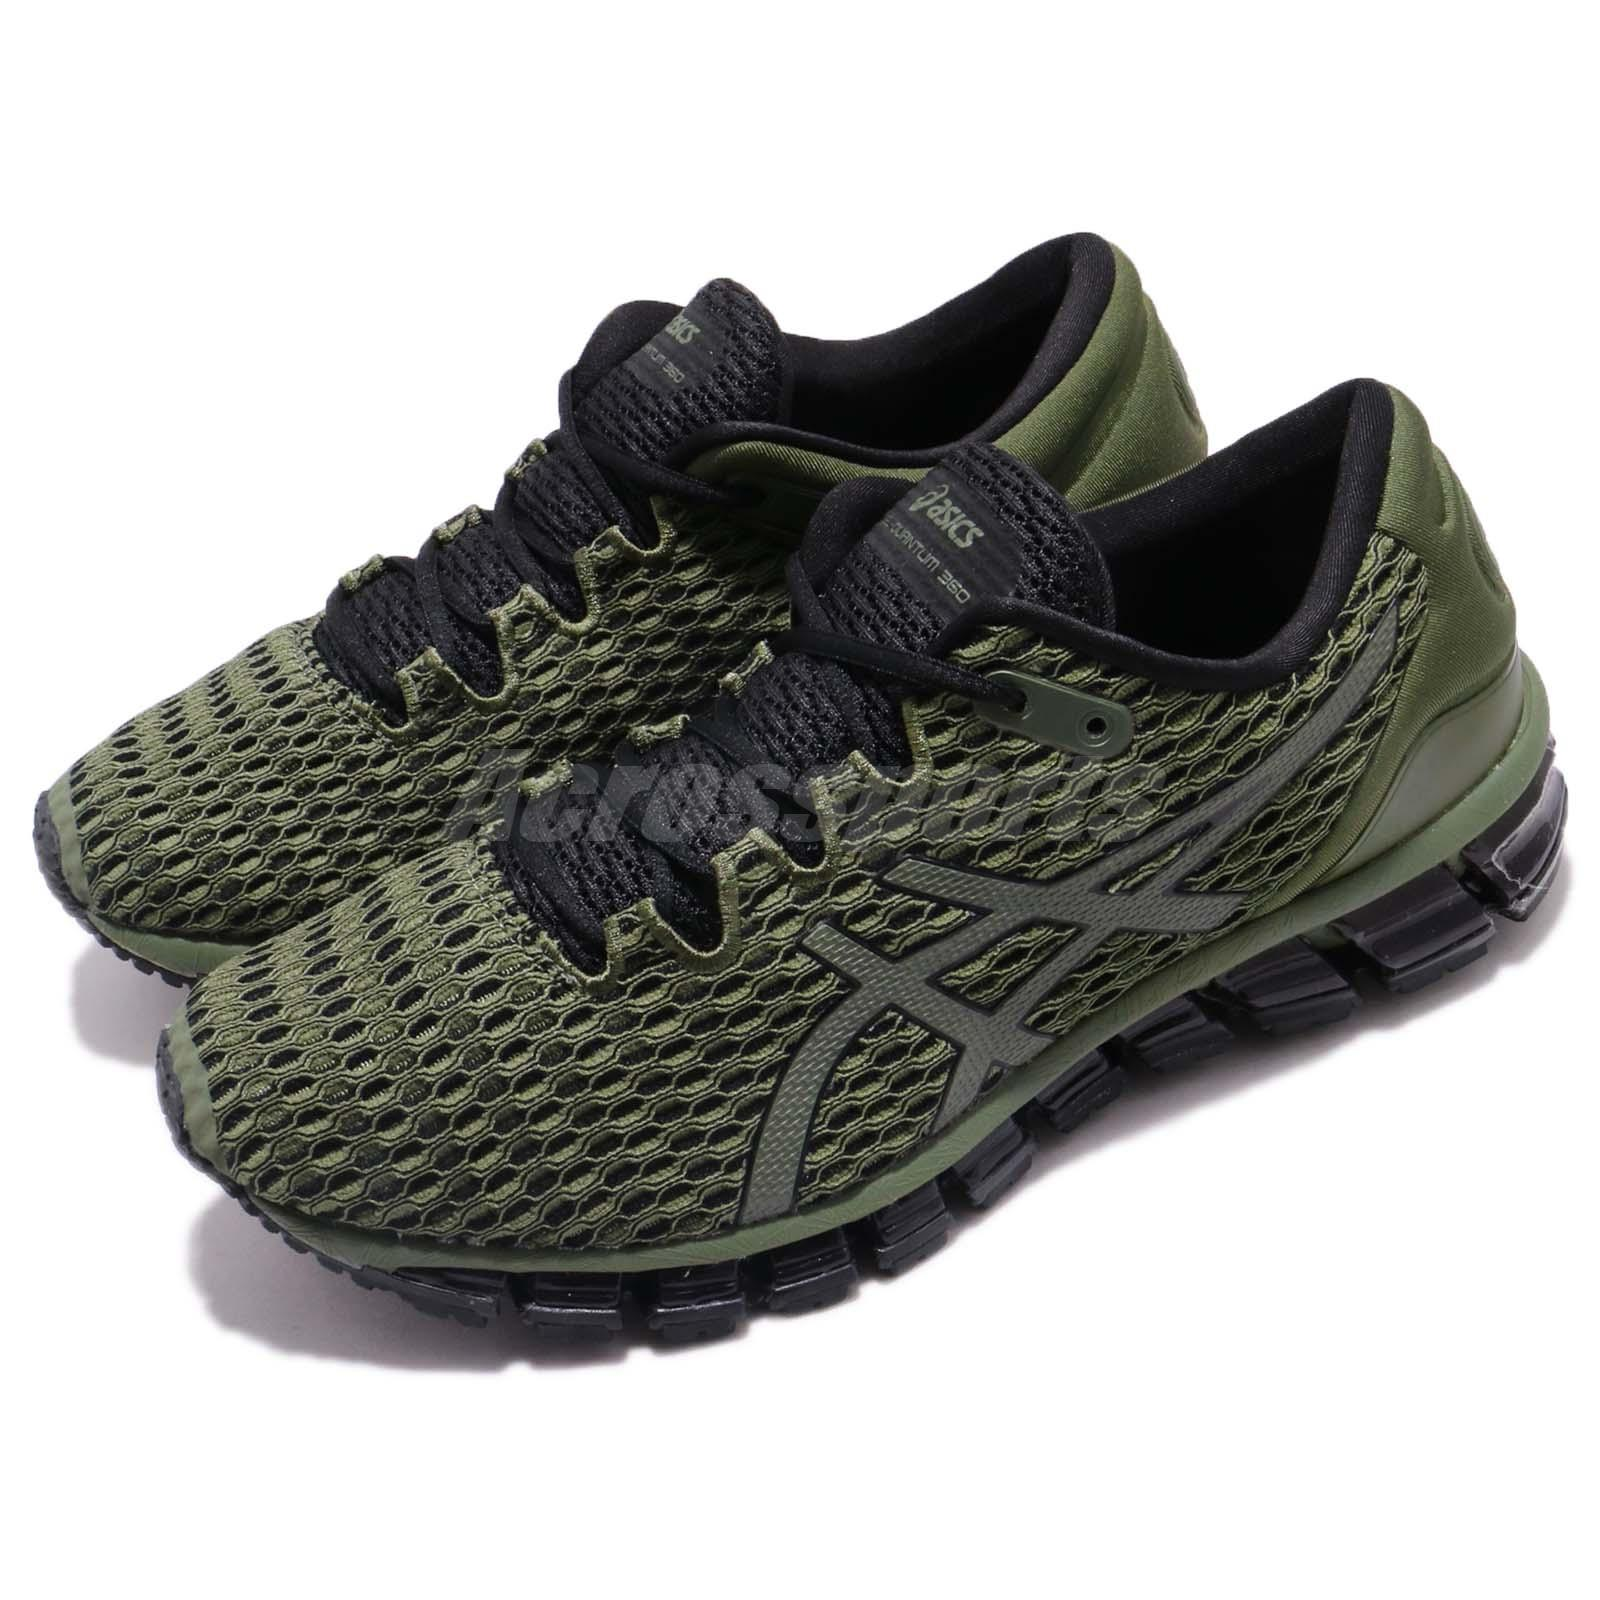 42d53686526e0 Details about Asics Gel-Quantum 360 Shift MX Four Leaf Green Men Running  Shoes T839N-8190